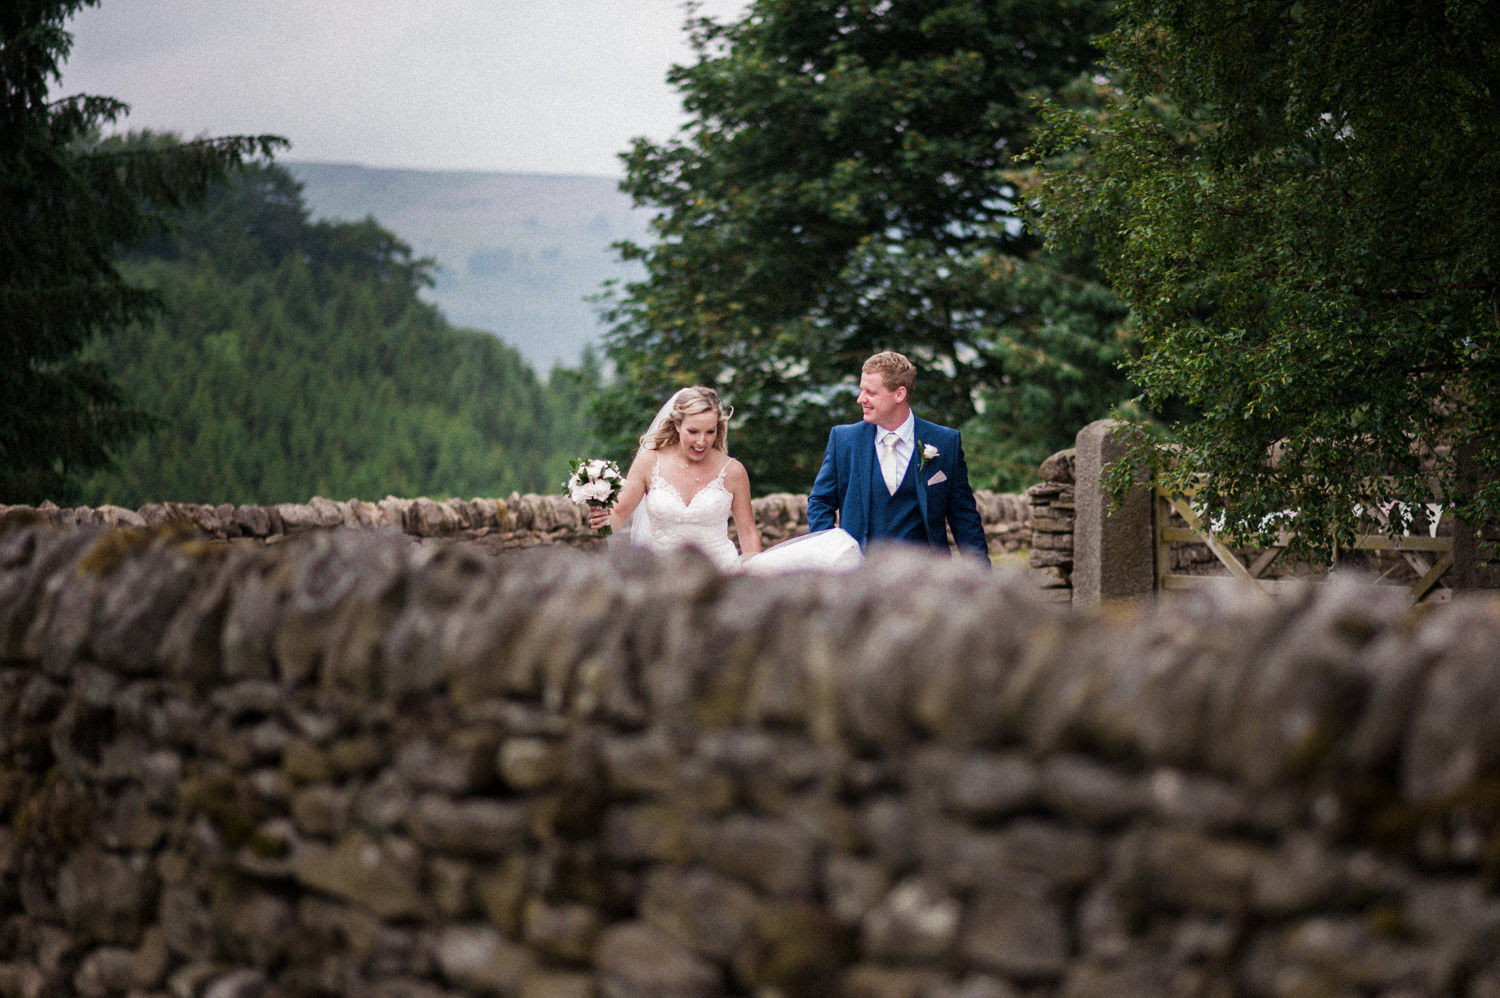 peak-district-wedding-photographer-Amanda-and-will-46.jpg